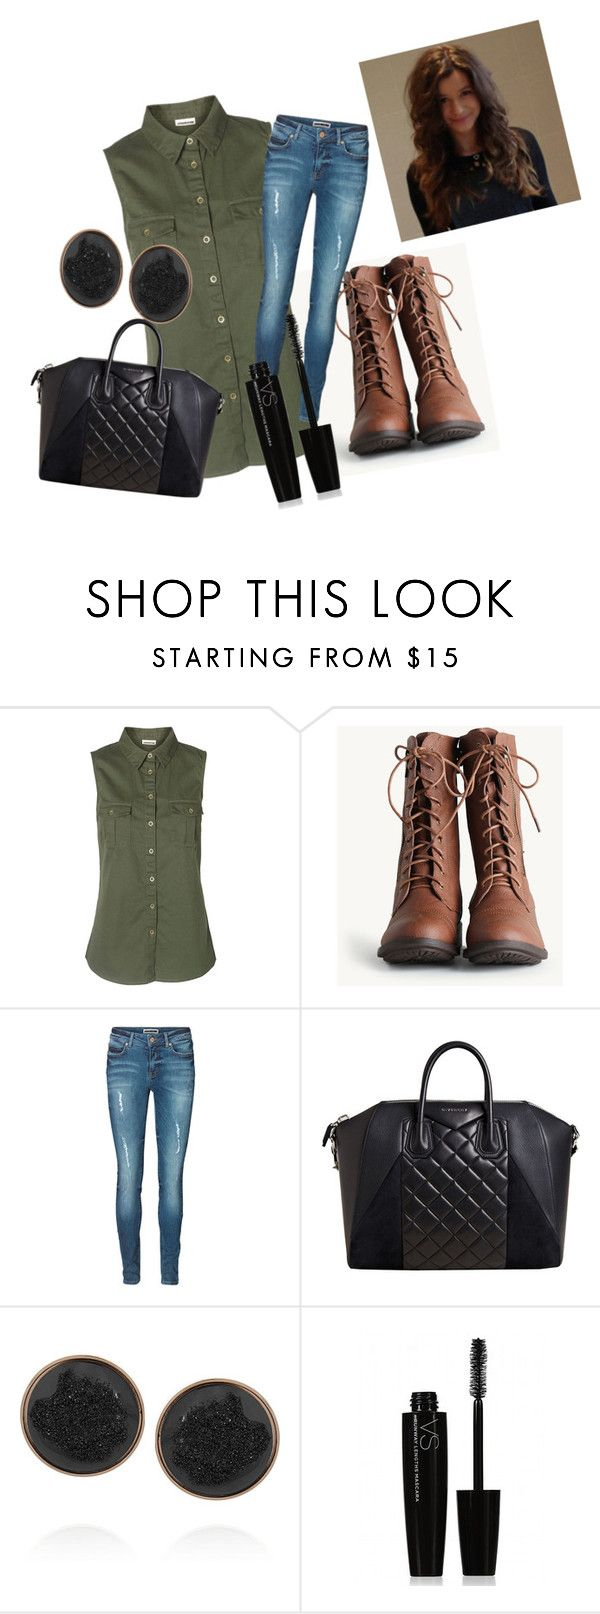 """""""Eleanor set"""" by littleladyinlondonlights ❤ liked on Polyvore featuring Vero Moda, Givenchy, Dara Ettinger and Victoria's Secret"""